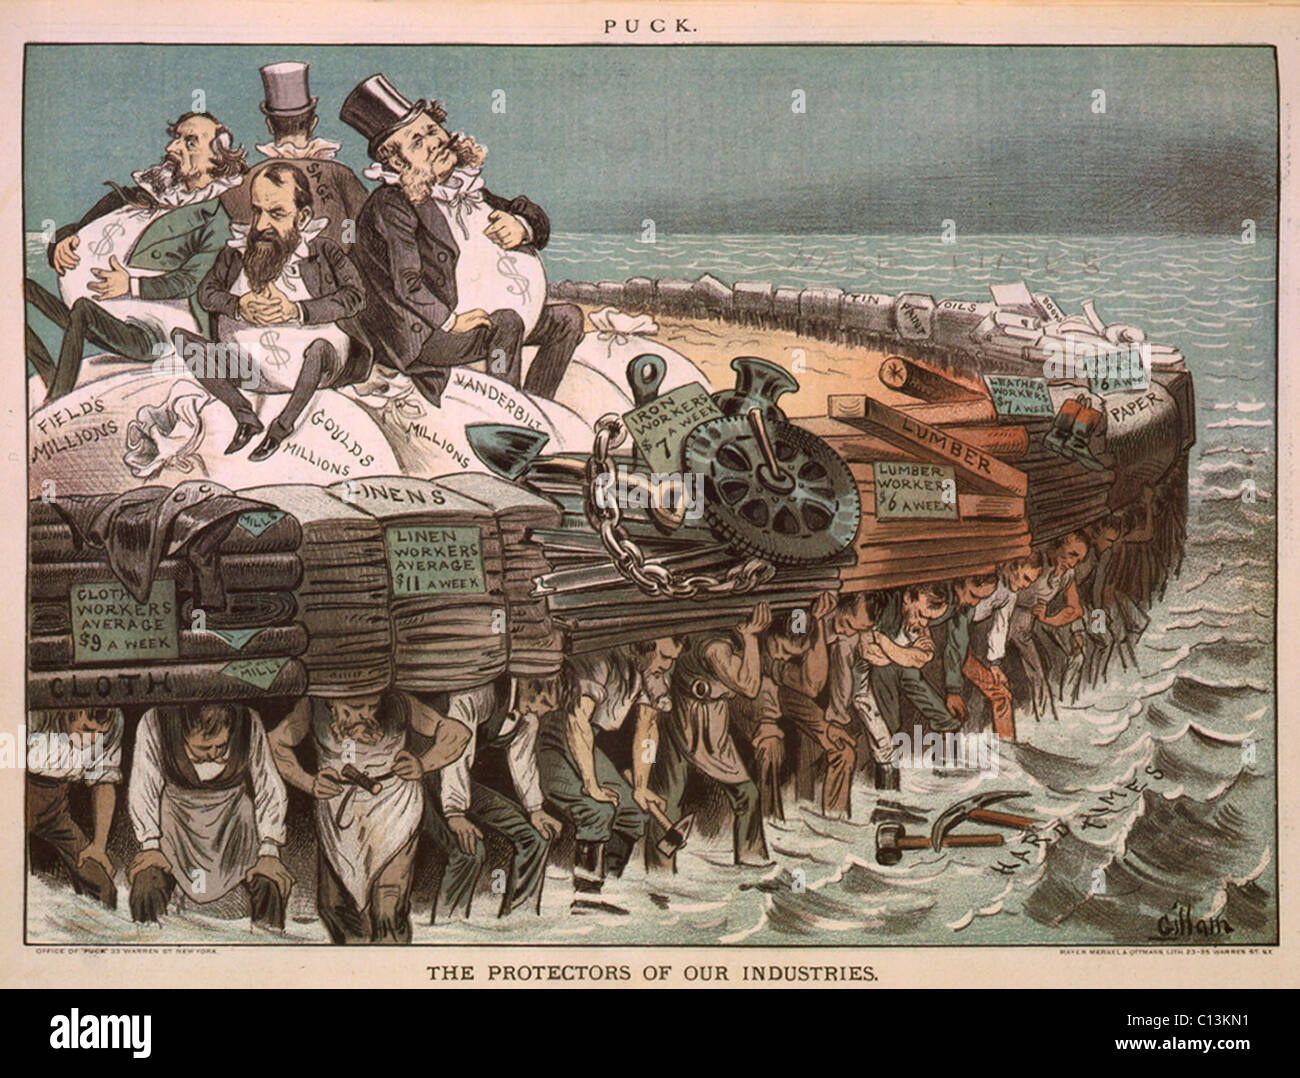 Political carton, THE PROTECTORS OF OUR INDUSTRIES, depicts tycoons Cyrus Field, Jay Gould, Cornelius Vanderbilt - Stock Image